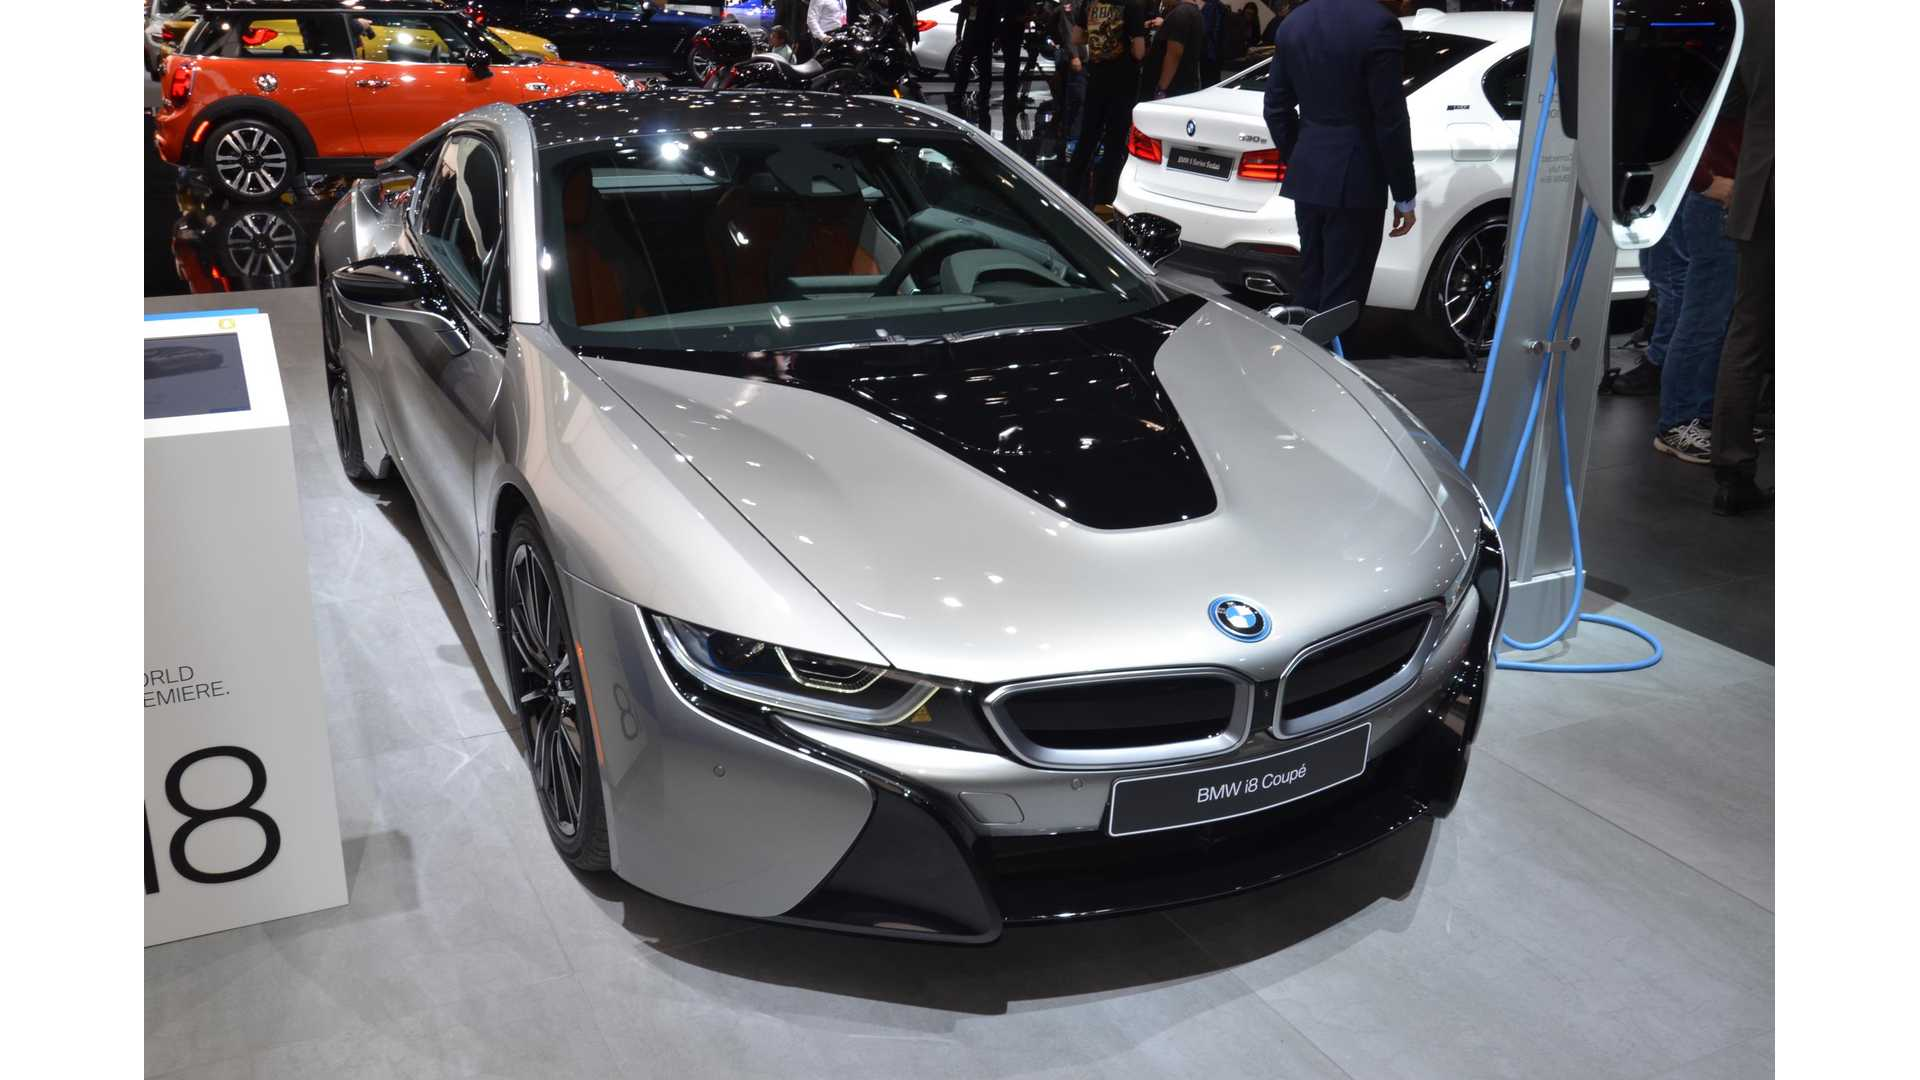 No Future Plans For A Bmw I8 Sport Due To Lack Of Demand